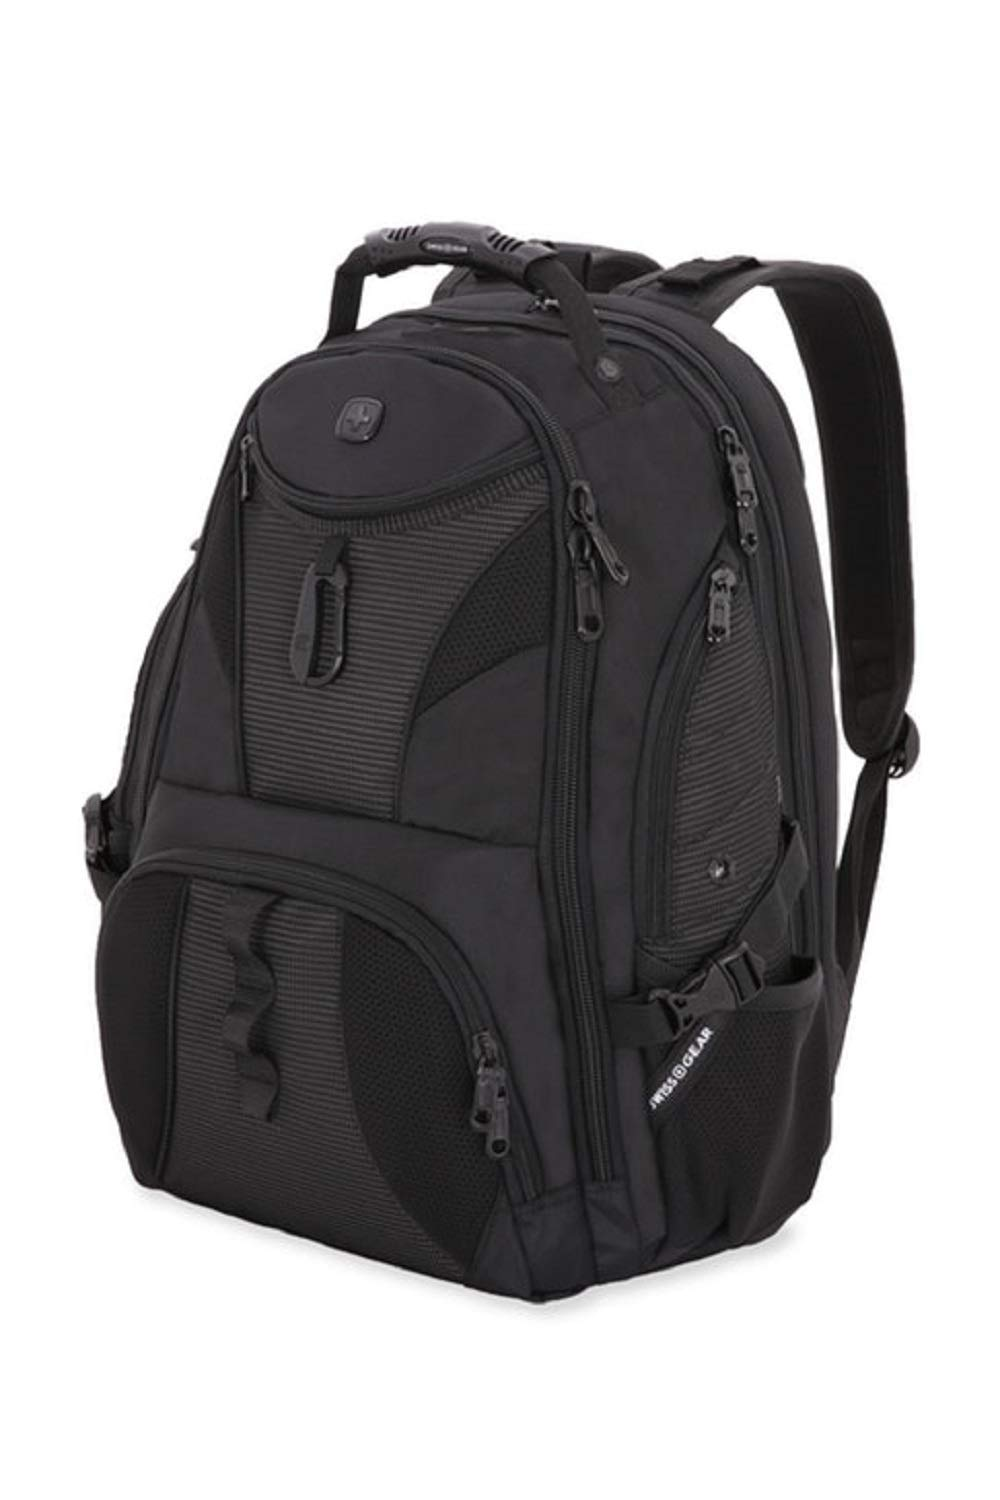 Swiss Gear Travel Gear 1900 Scansmart TSA Laptop Backpack - 19' SwissGear 19002315